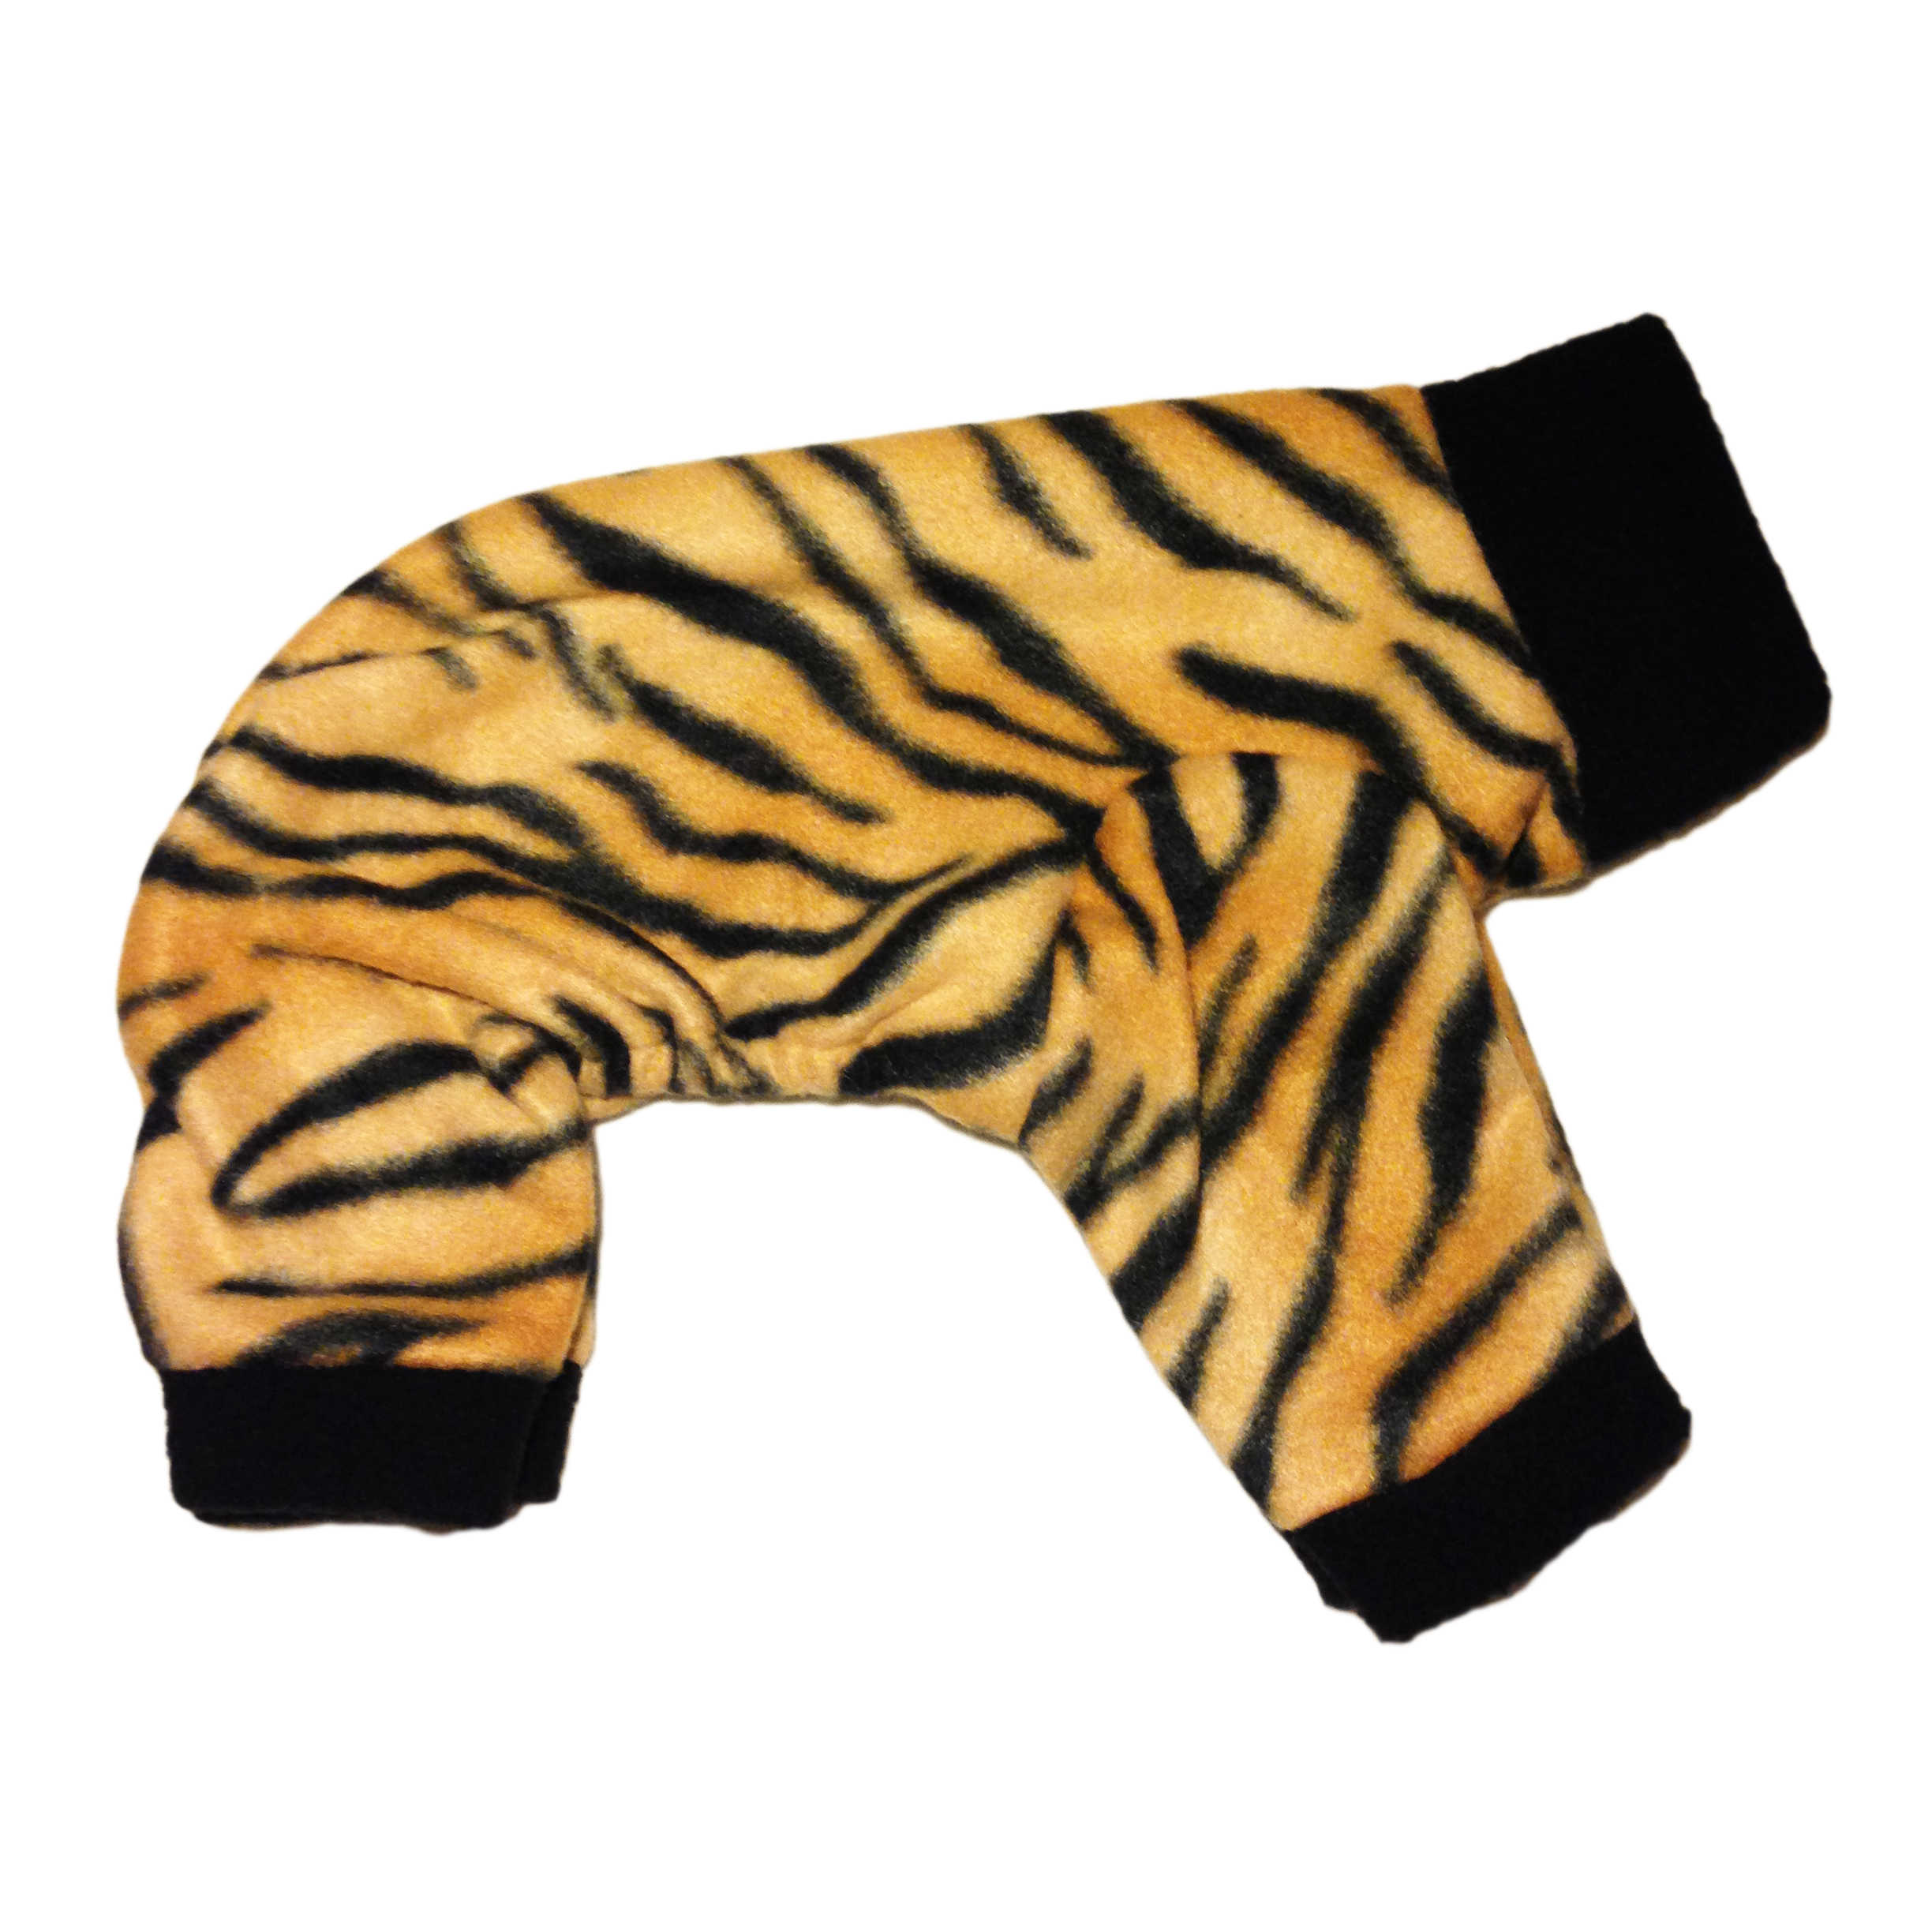 Tiger Dog Pajama on Four Legged Cat Body Harness With Leash